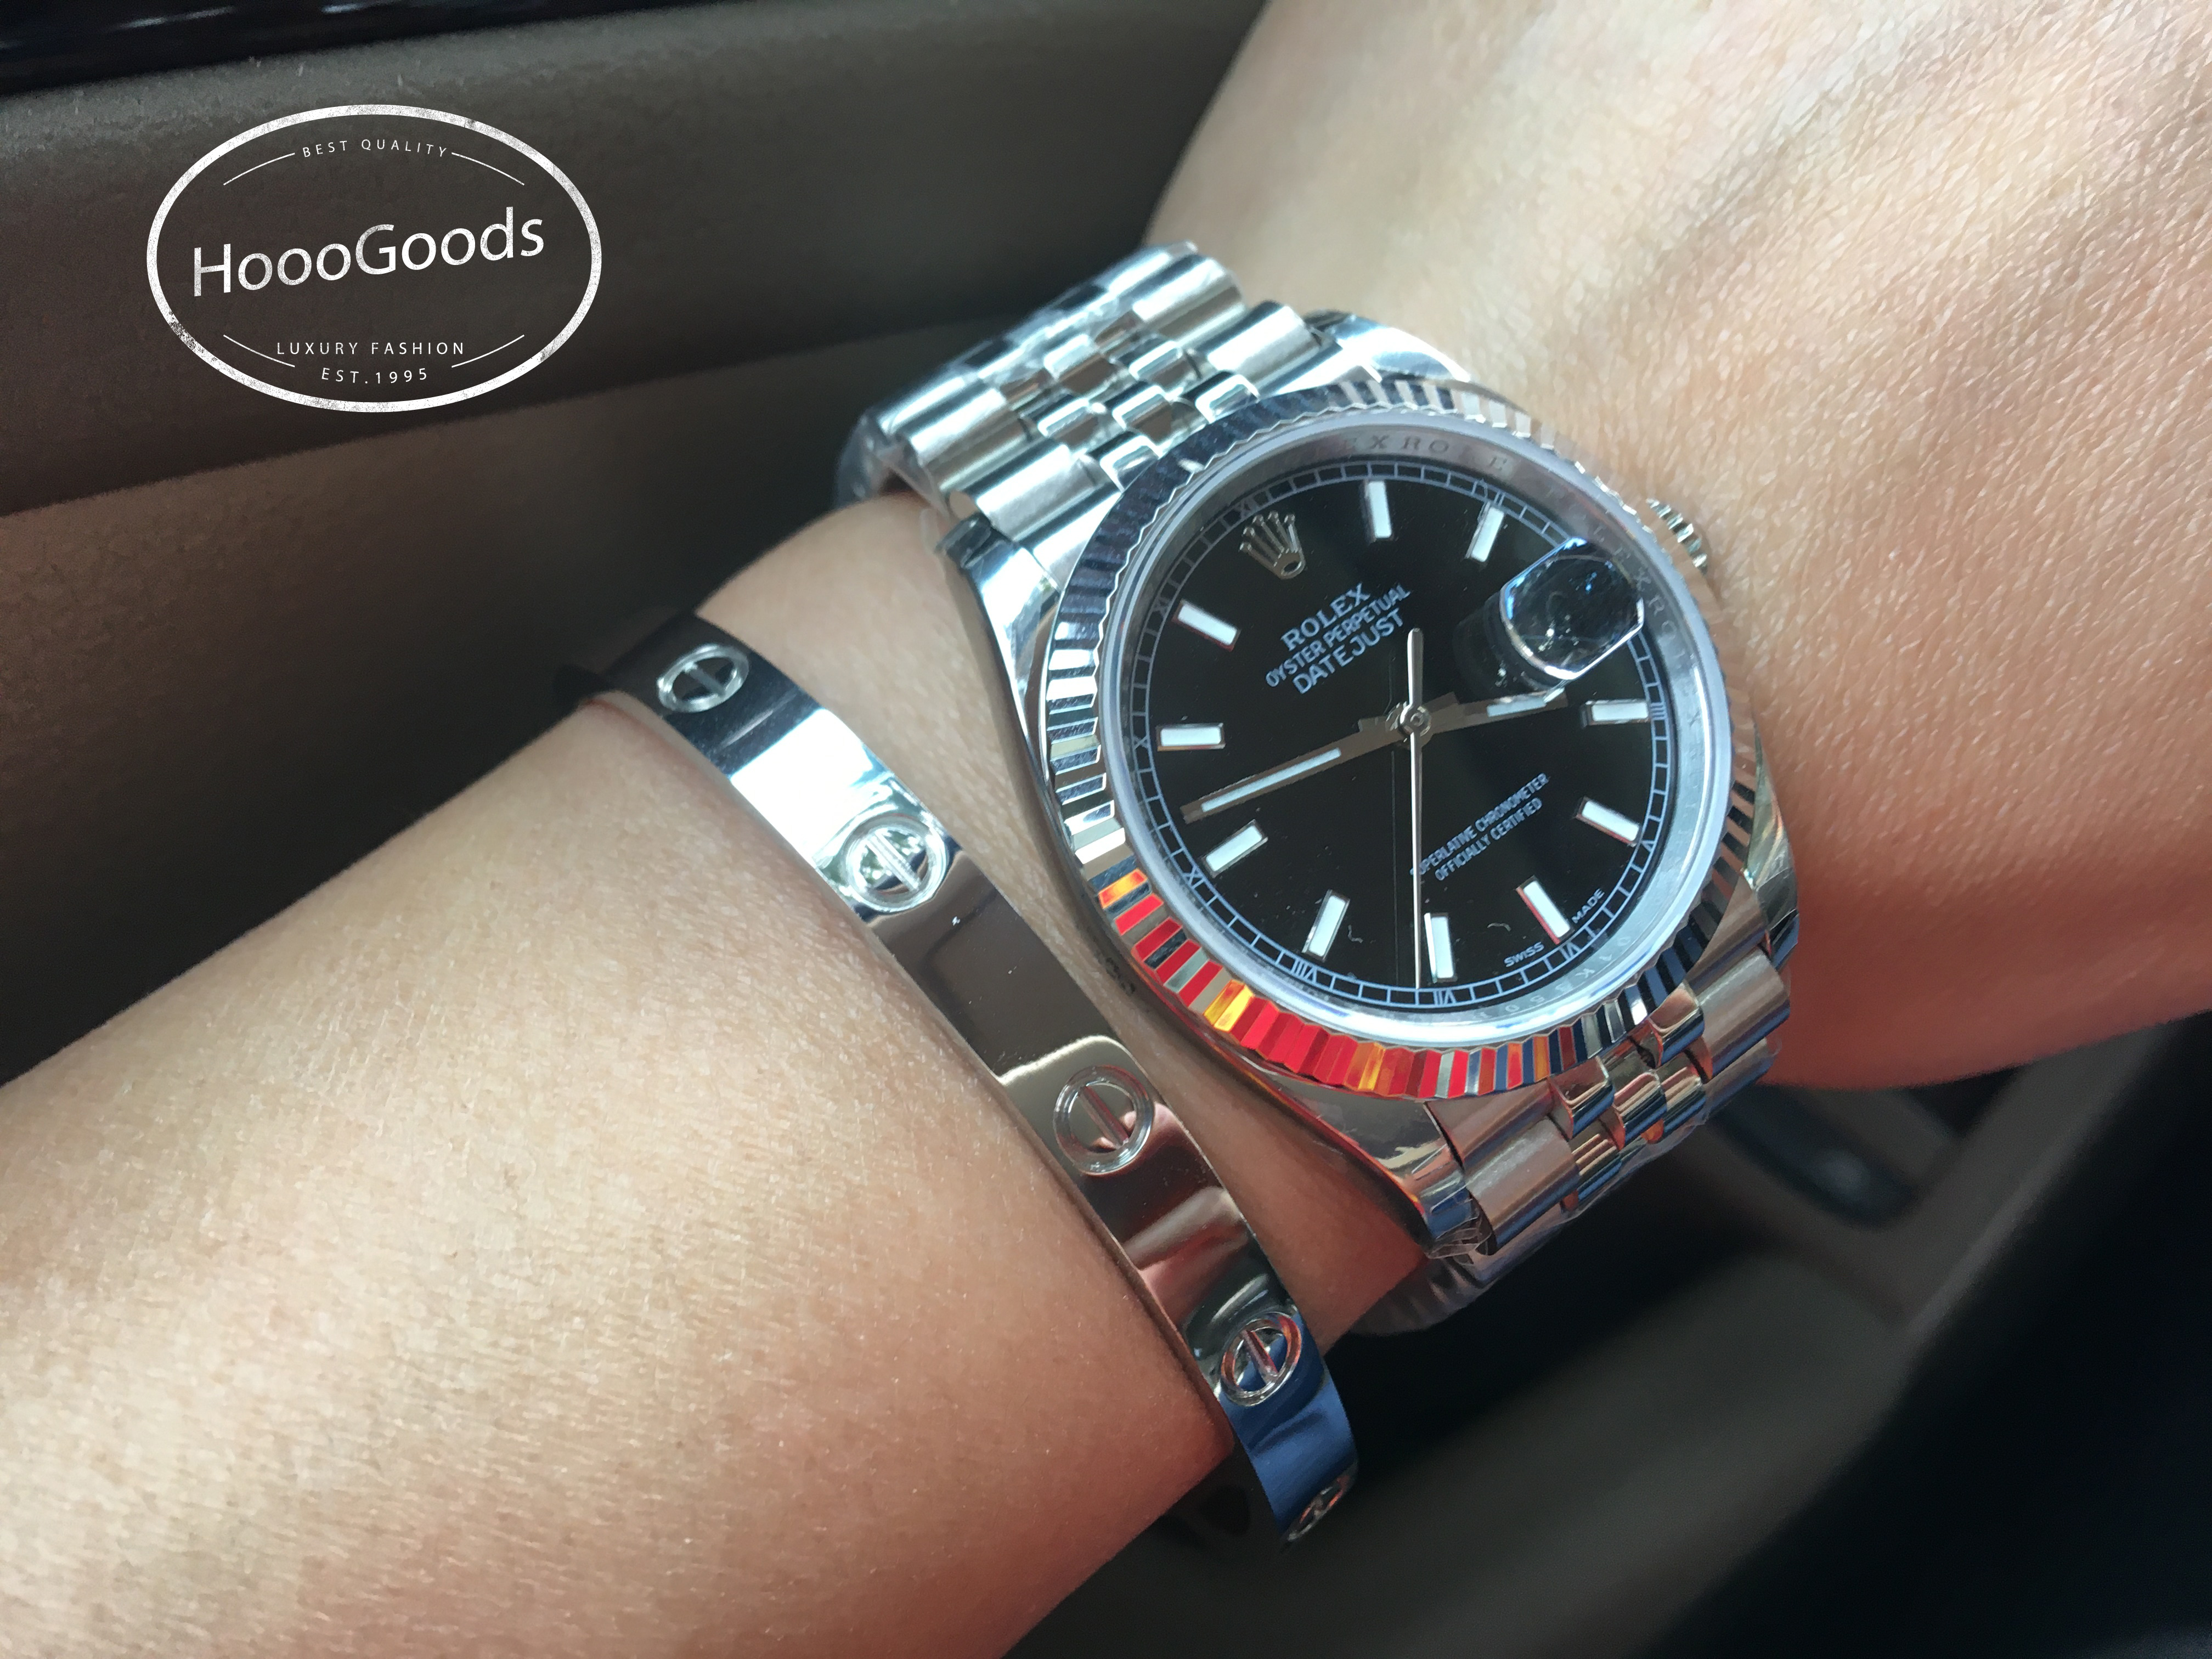 Rolex DAY-DATE 36 Watch and Cartier Love Bracelet